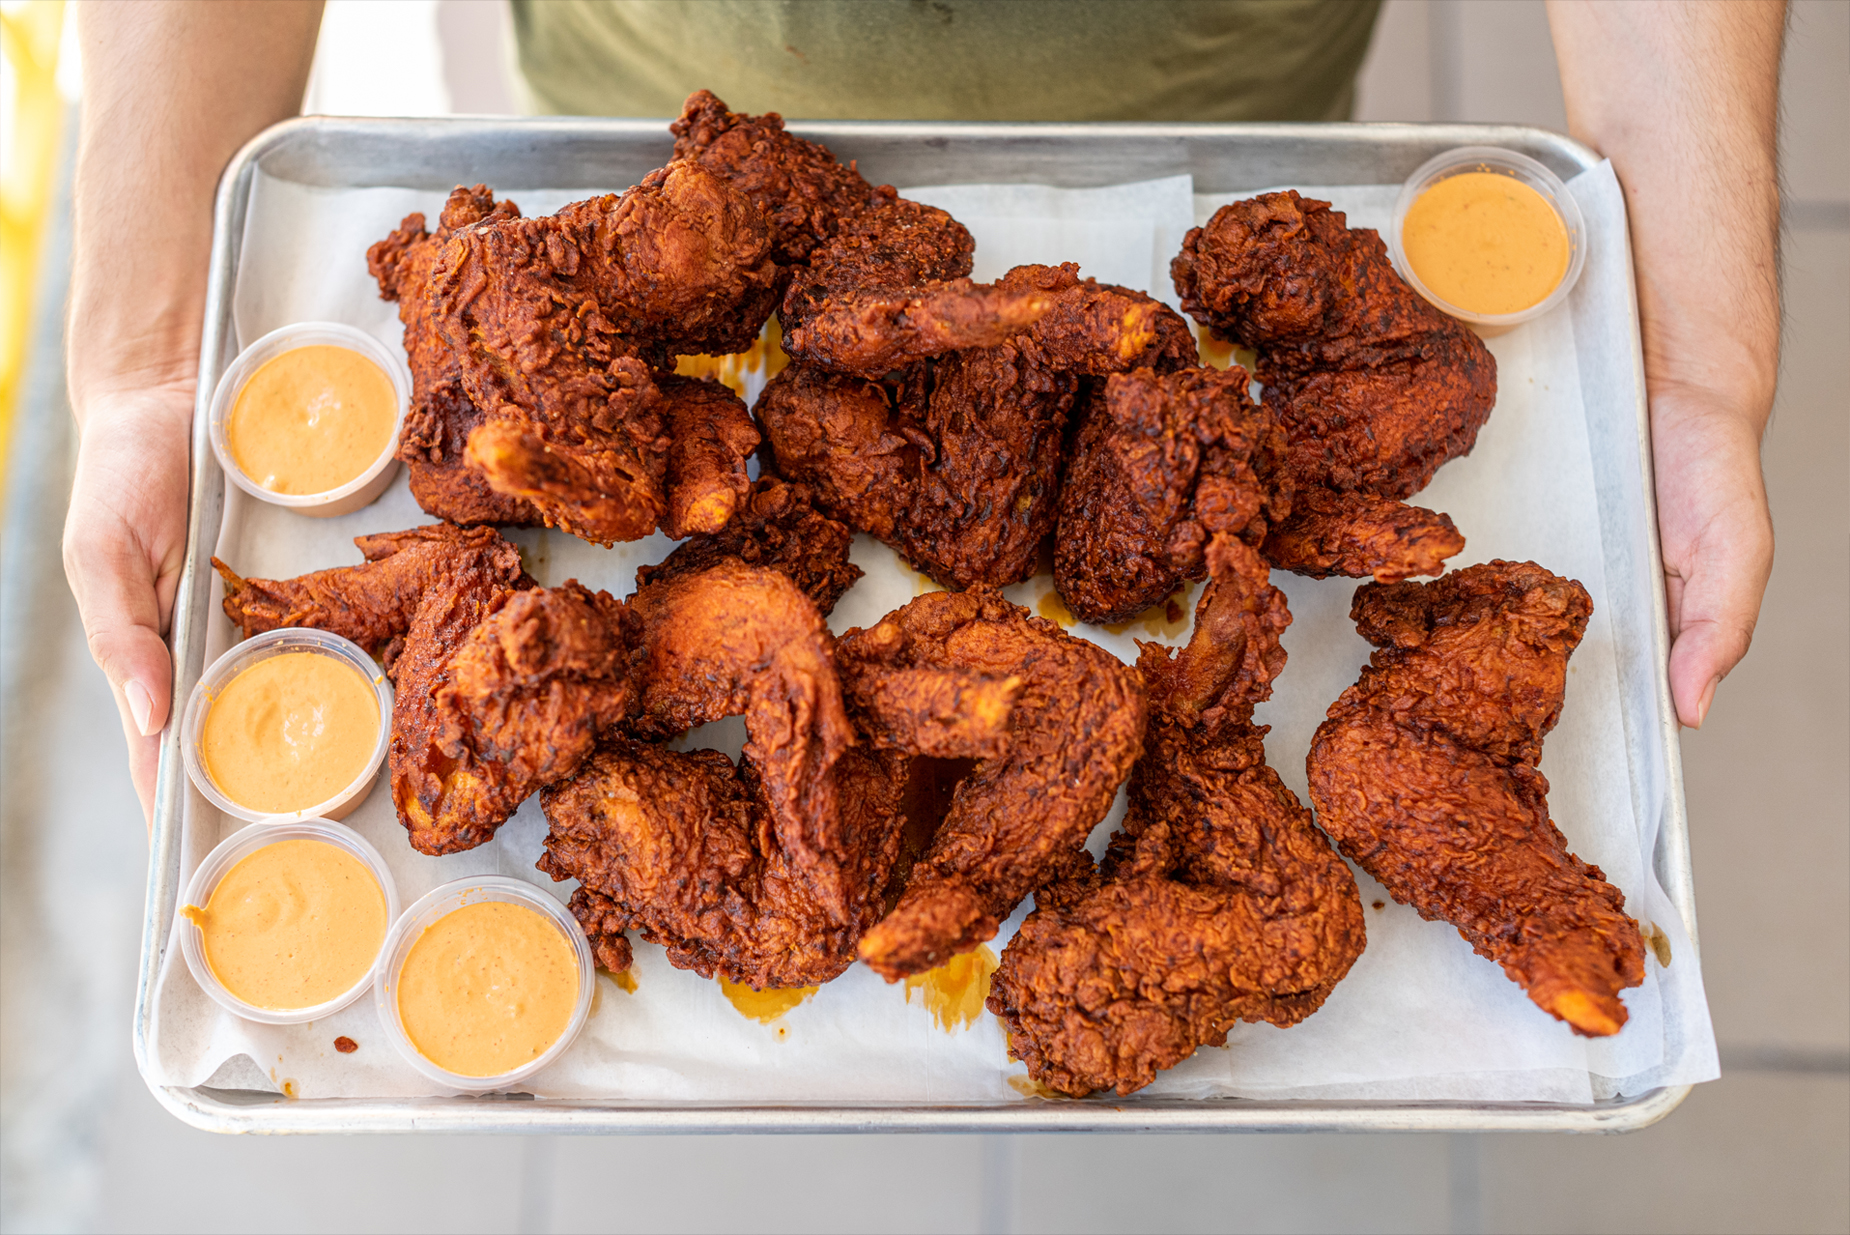 Plate of Whole Wings